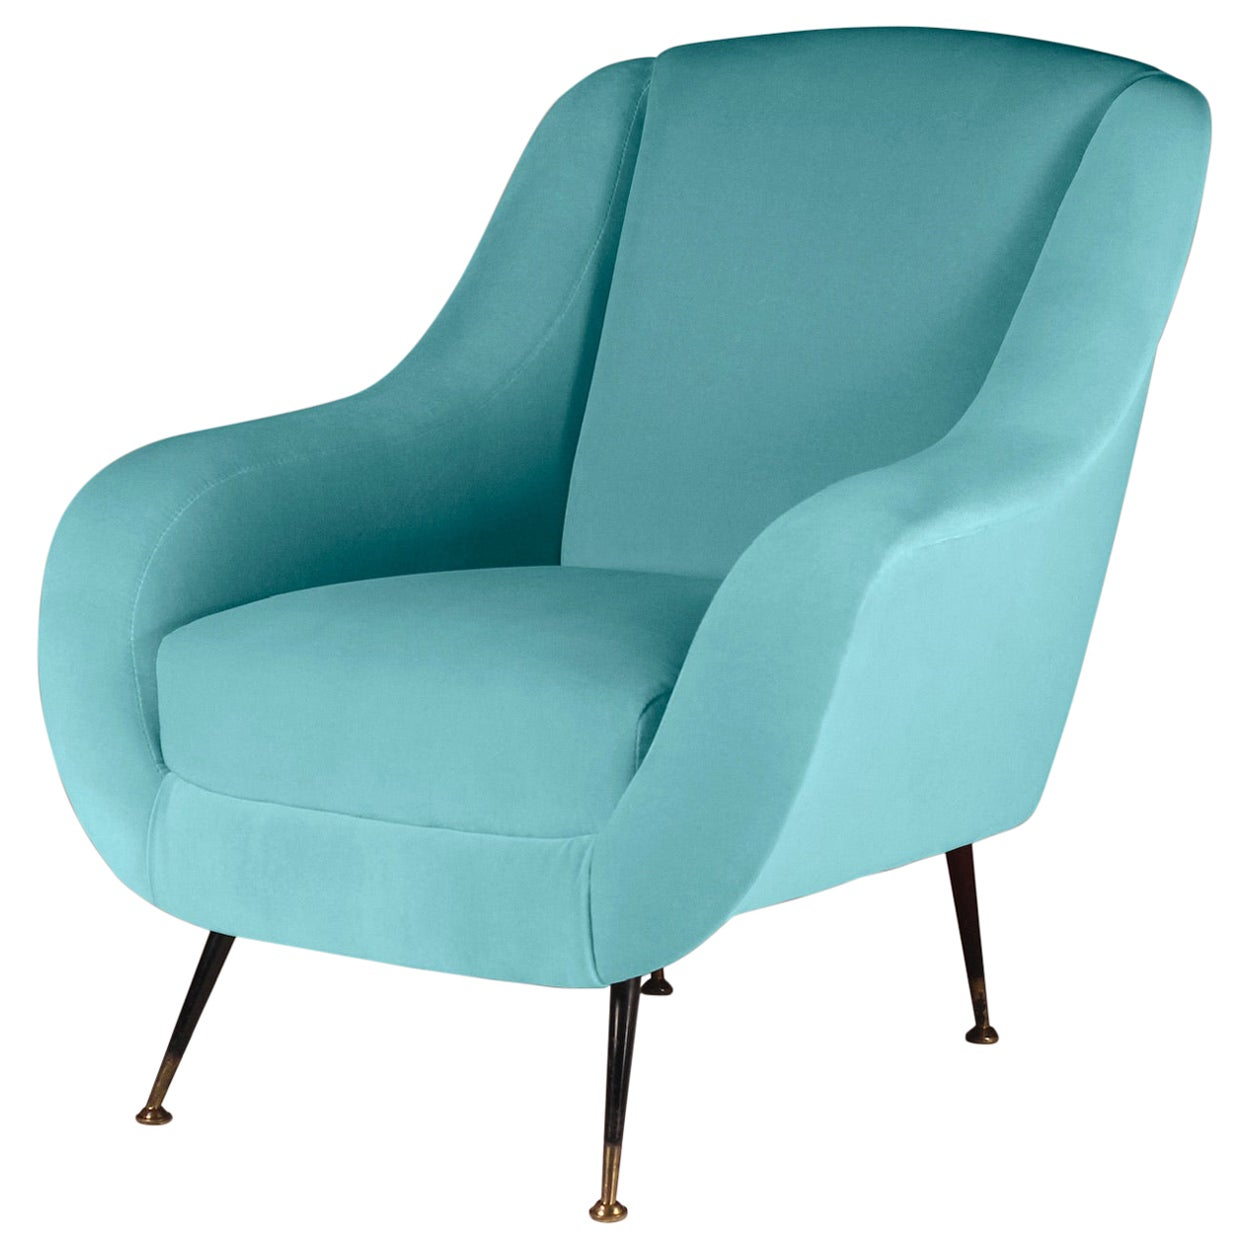 Midcentury Style Italian Lounge Chair in Turquoise